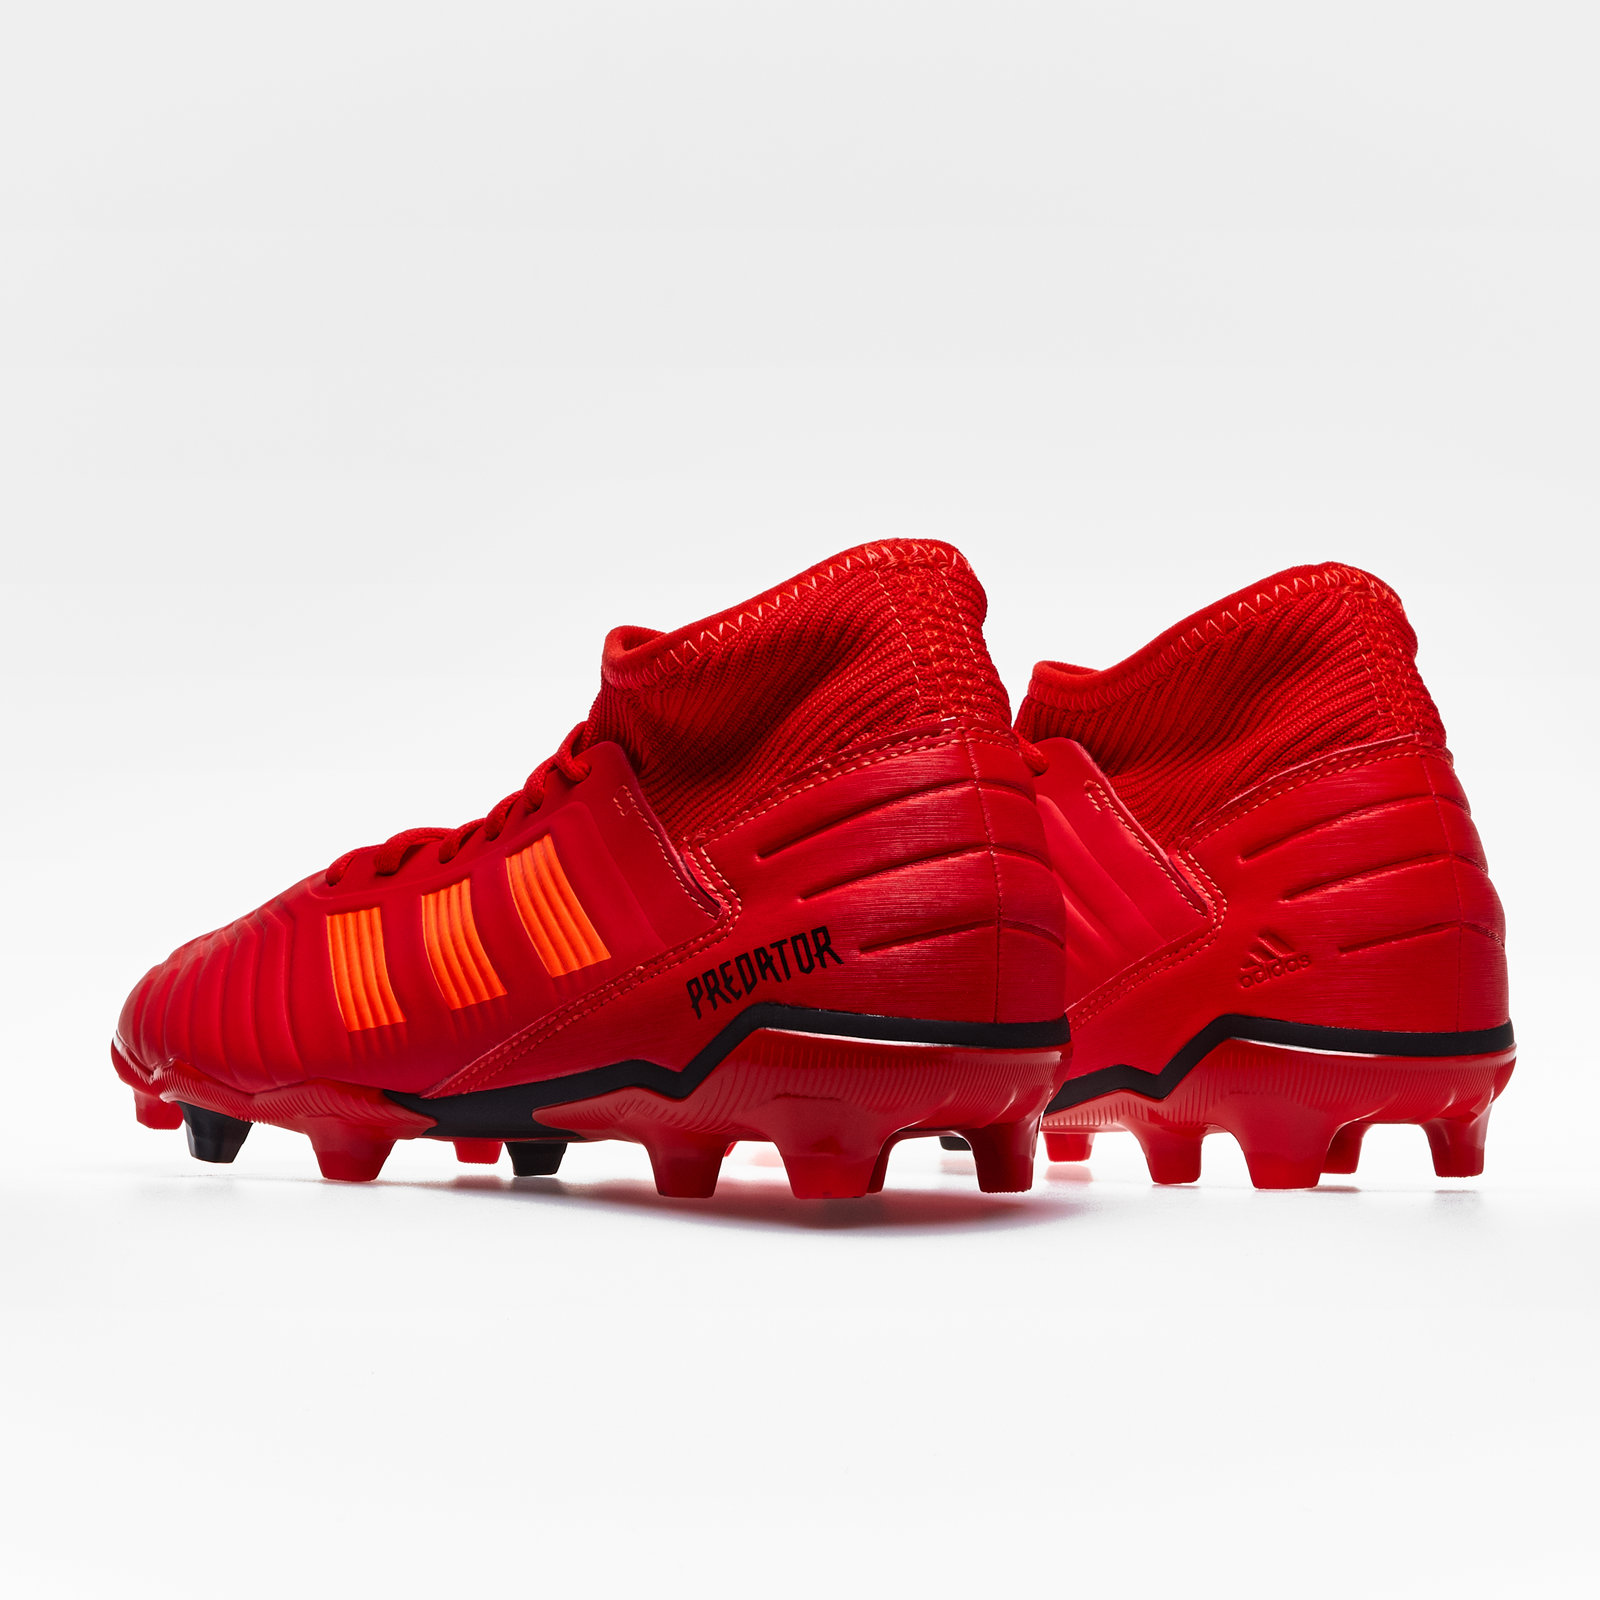 39359f2af6c7 adidas Predator 19.3 Kids Firm Ground Football Boots Studs Trainers Shoes  Red